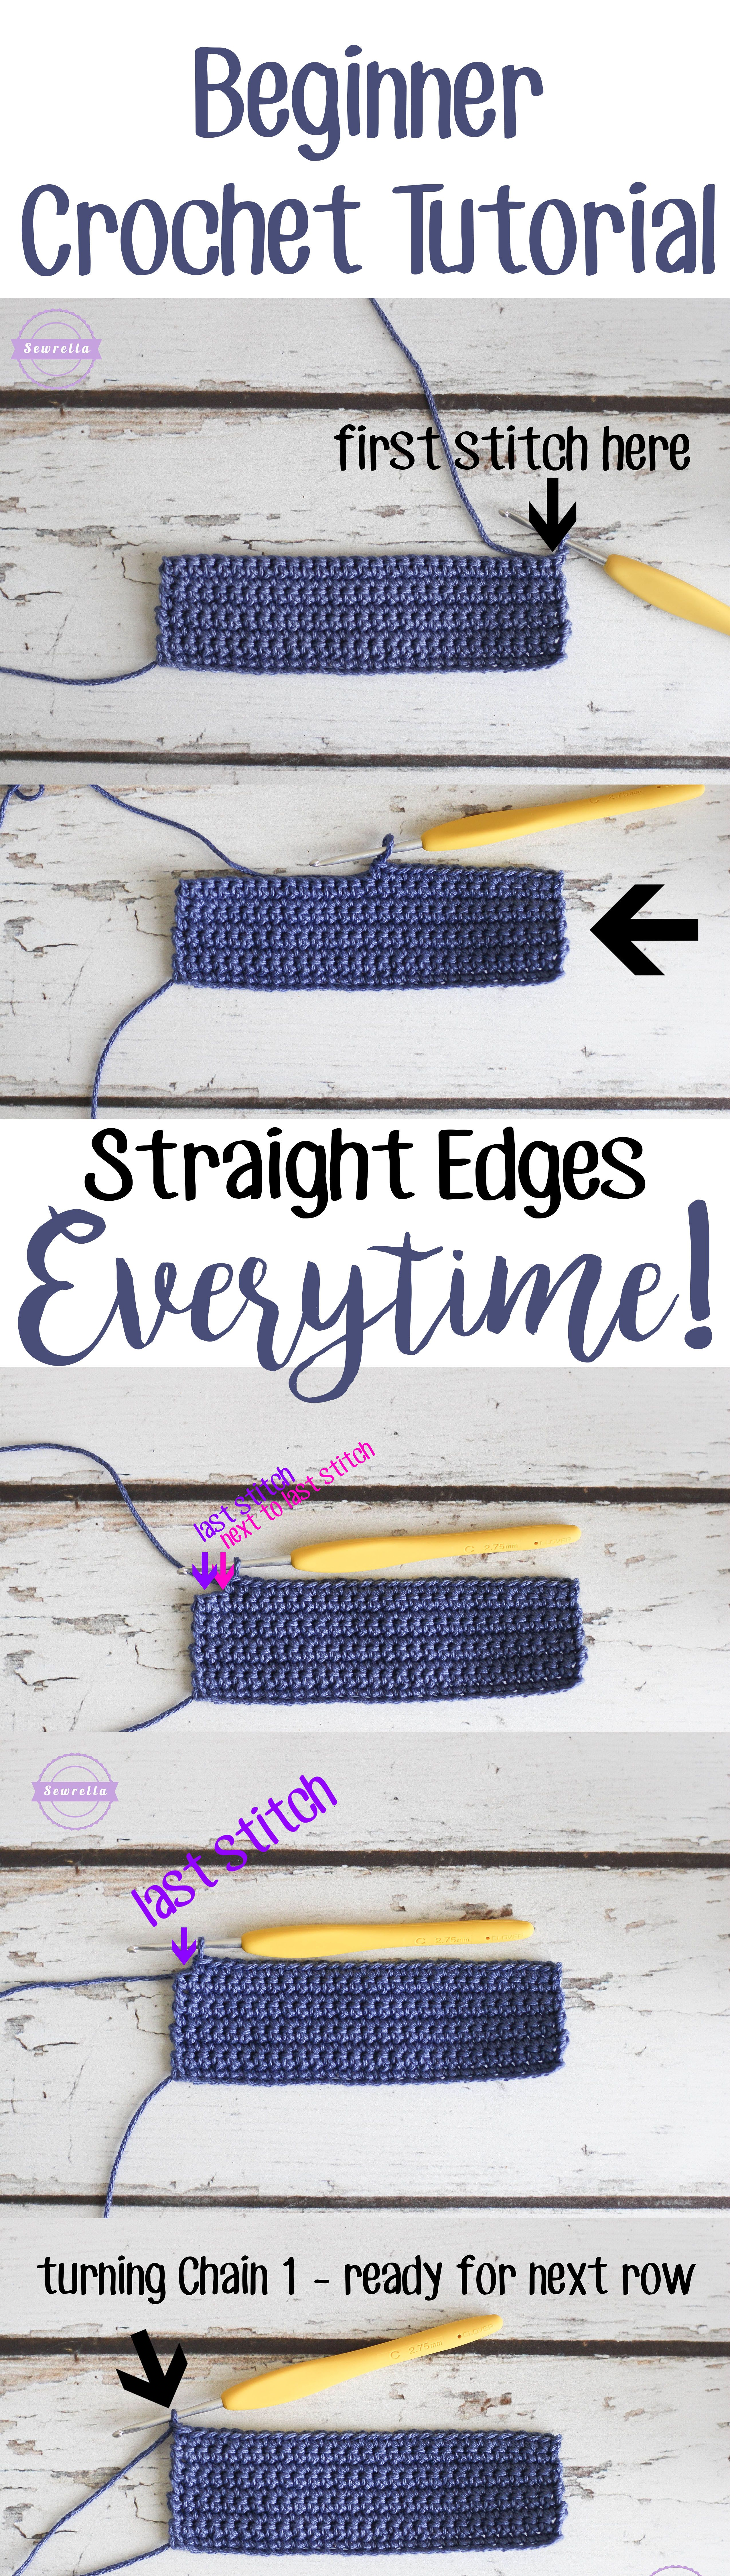 Crochet Tips - Straight Edges Everytime | Pinterest | Tejido ...